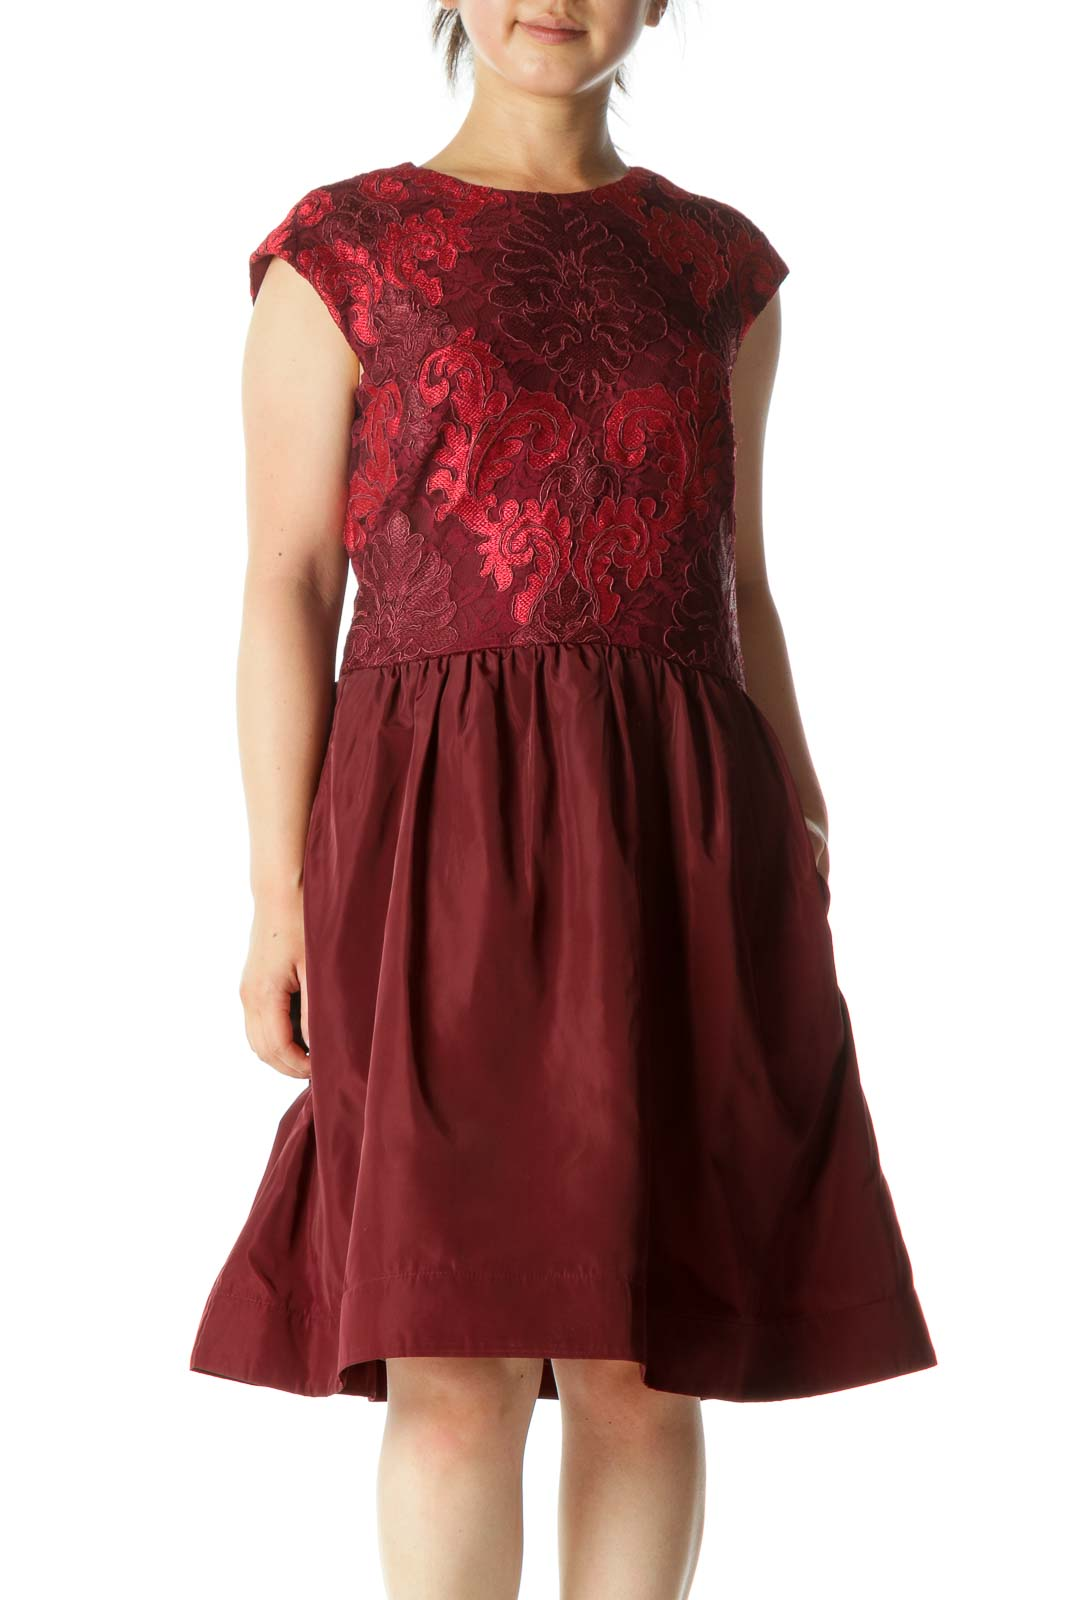 Burgundy Red Lace Knit Cinched Waist Structured Skirt-Rim Cocktail Dress Front